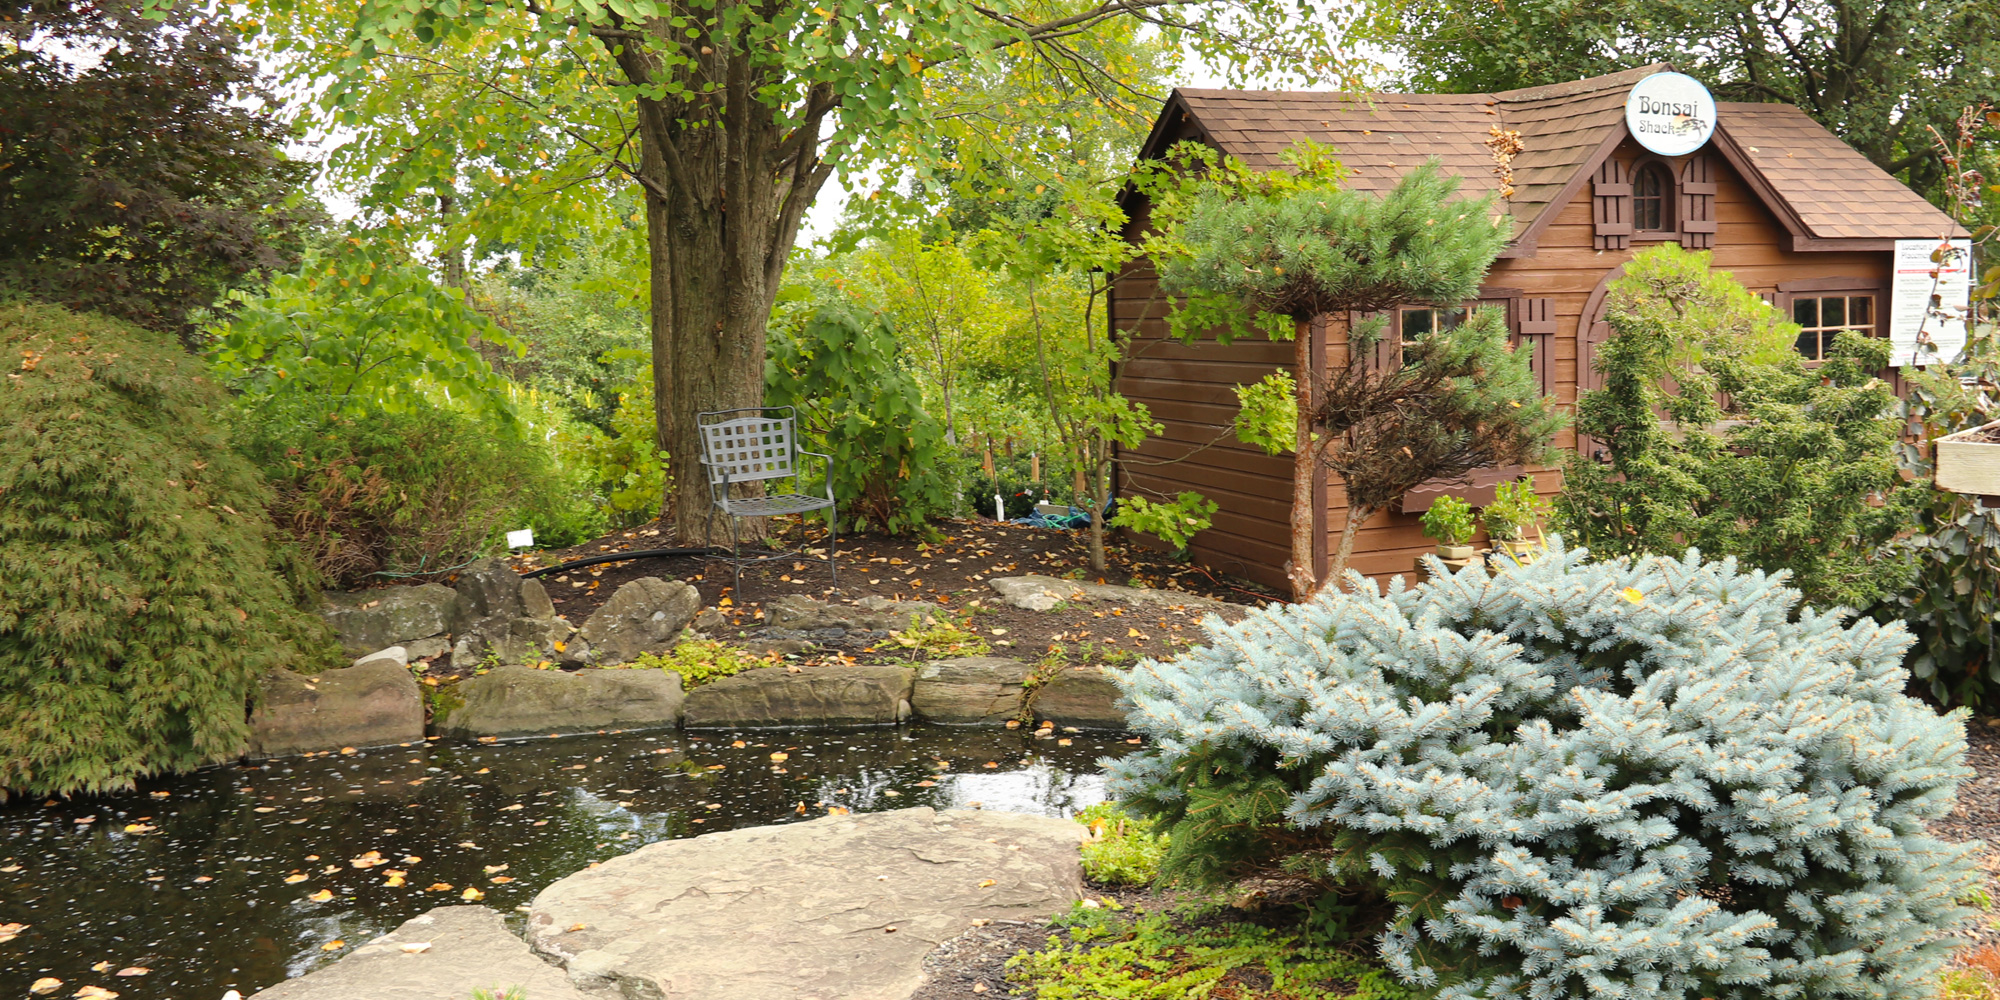 The Koi Pond and Bonsai Shack at Down to Earth